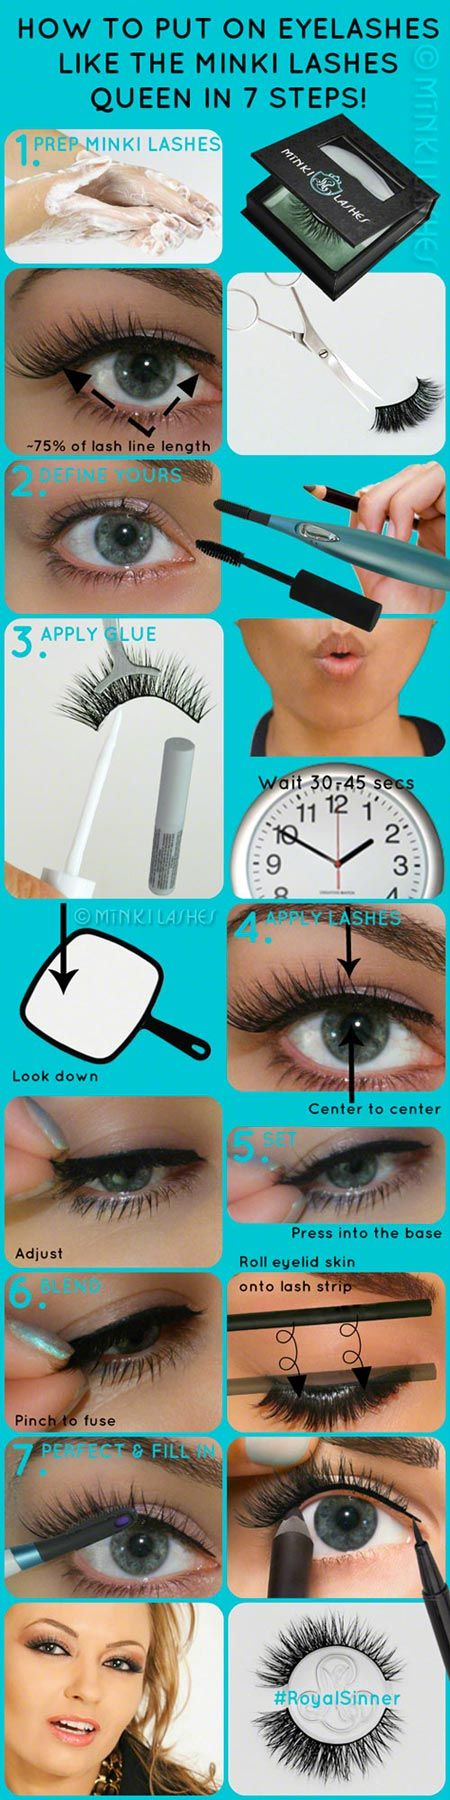 i need to learn how to put on any type of lashes and save my thirty  five dollars lol☺